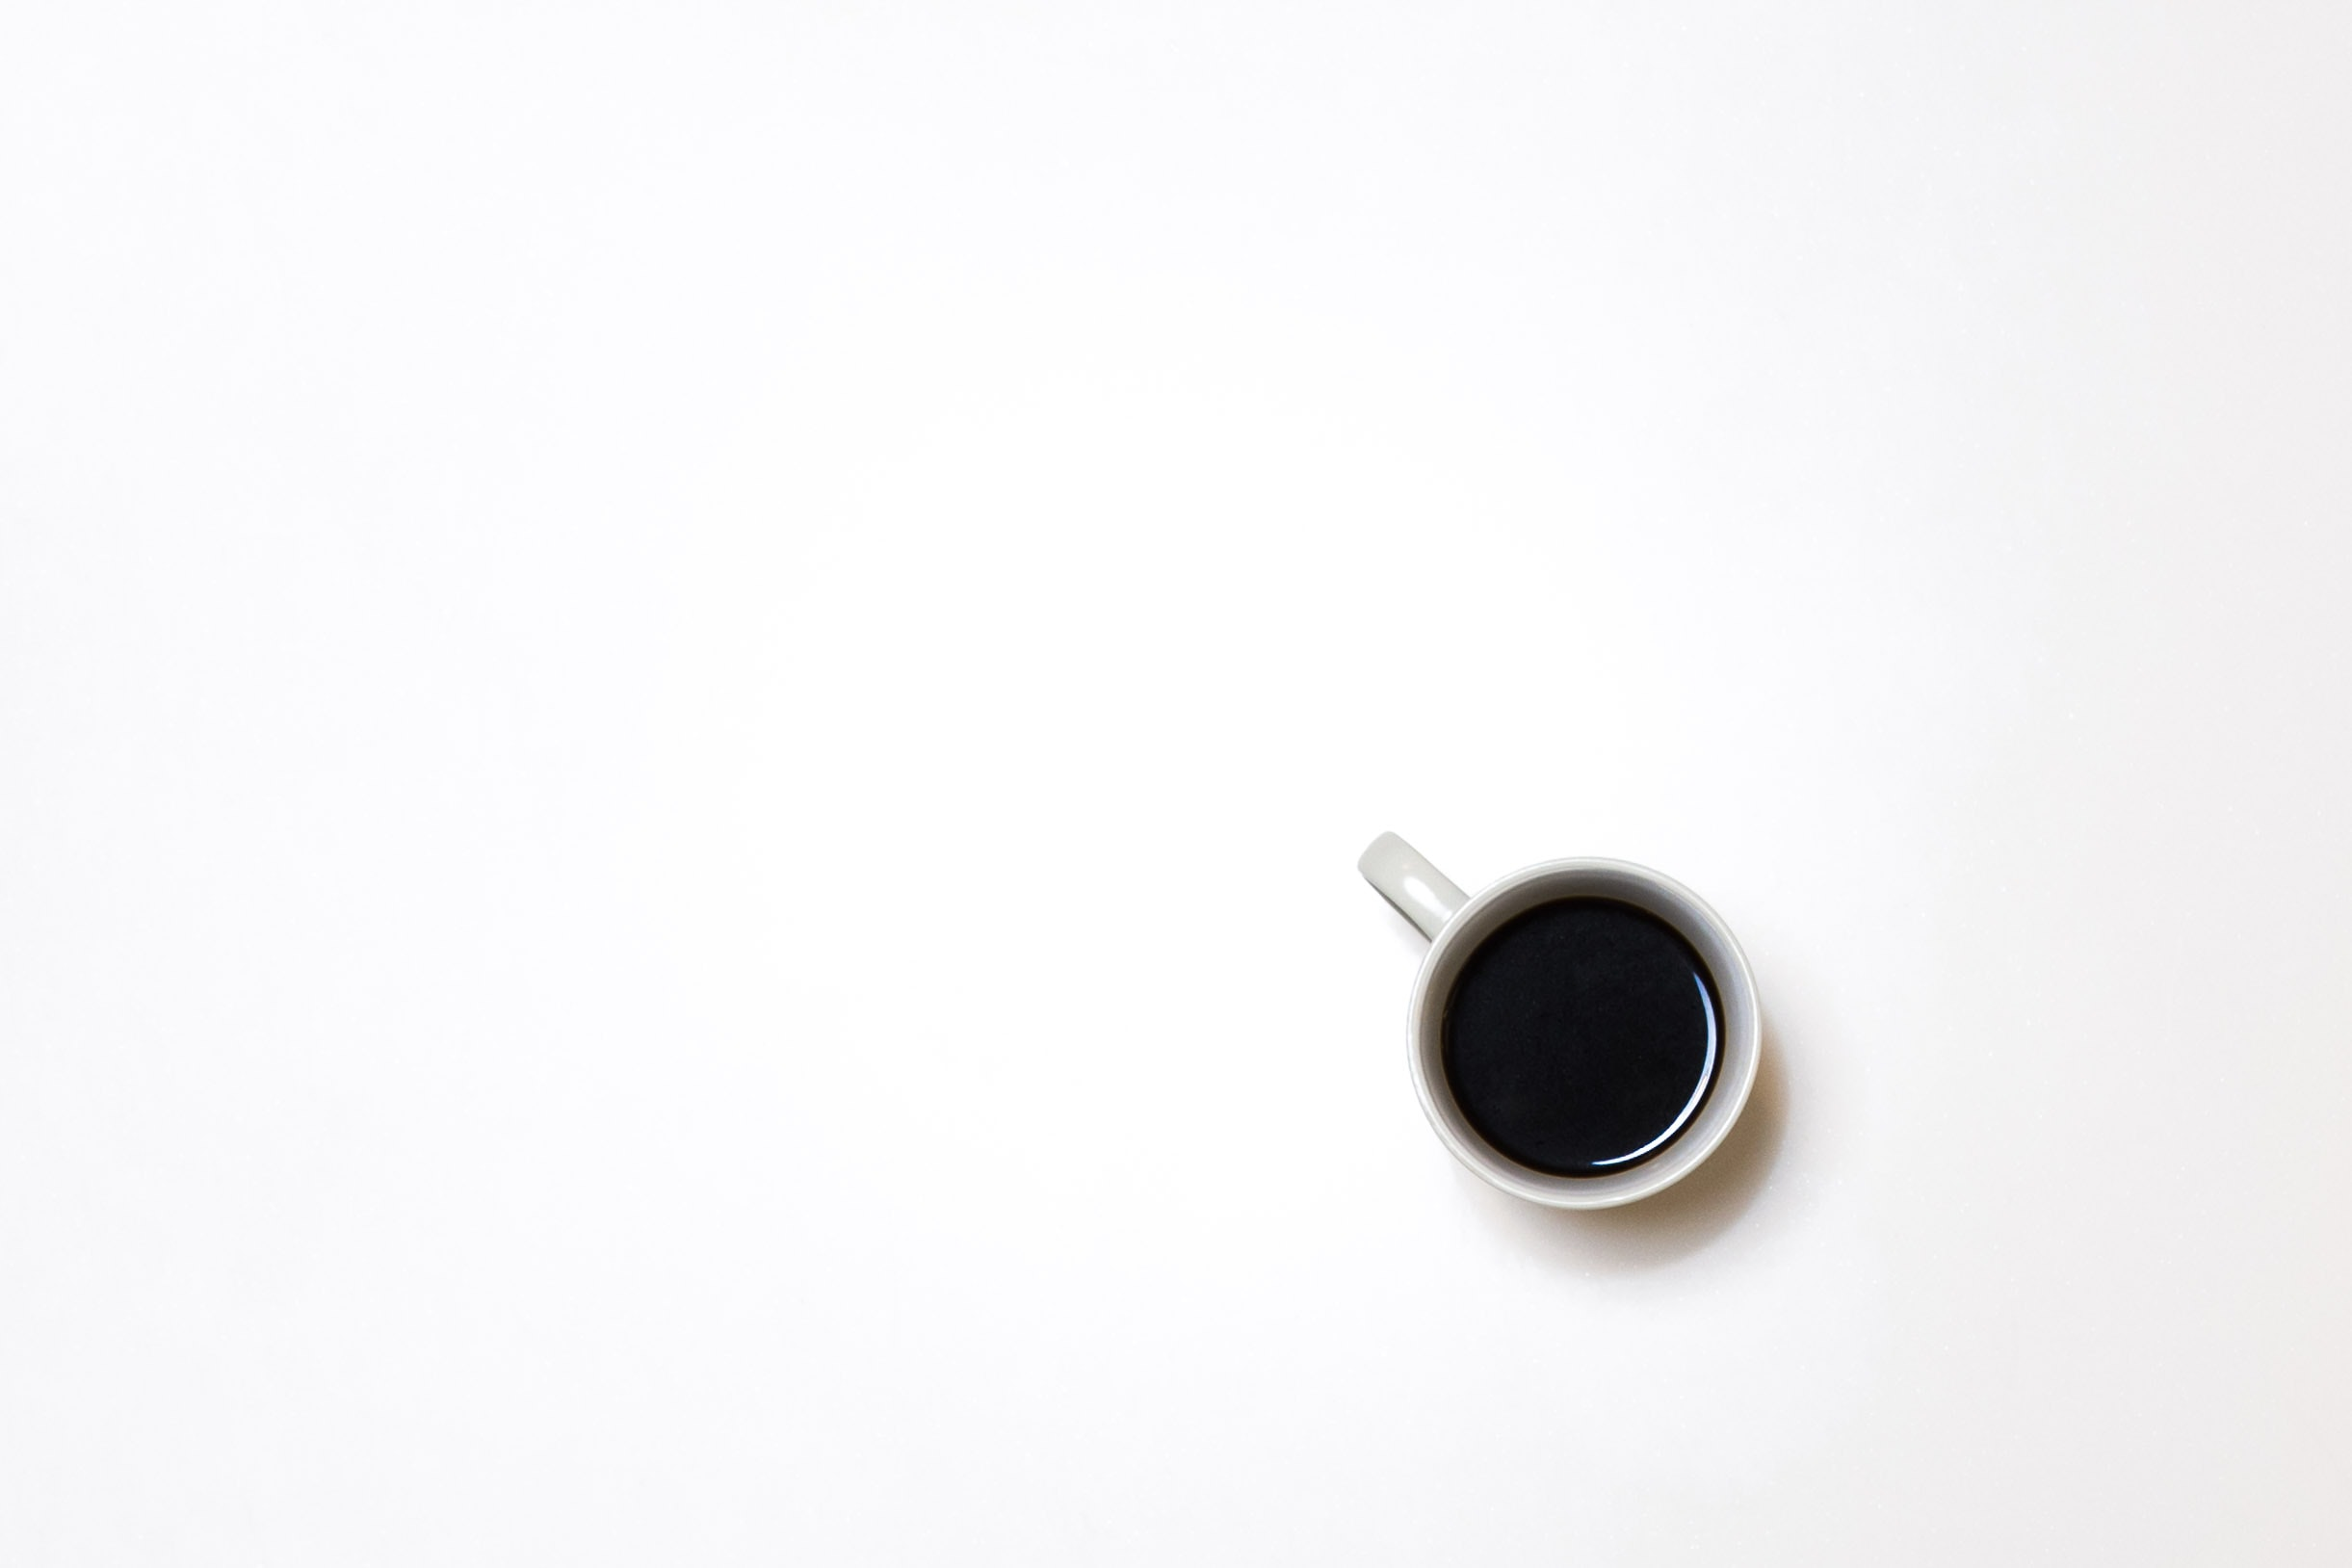 An overhead shot of a cup of coffee on a white surface